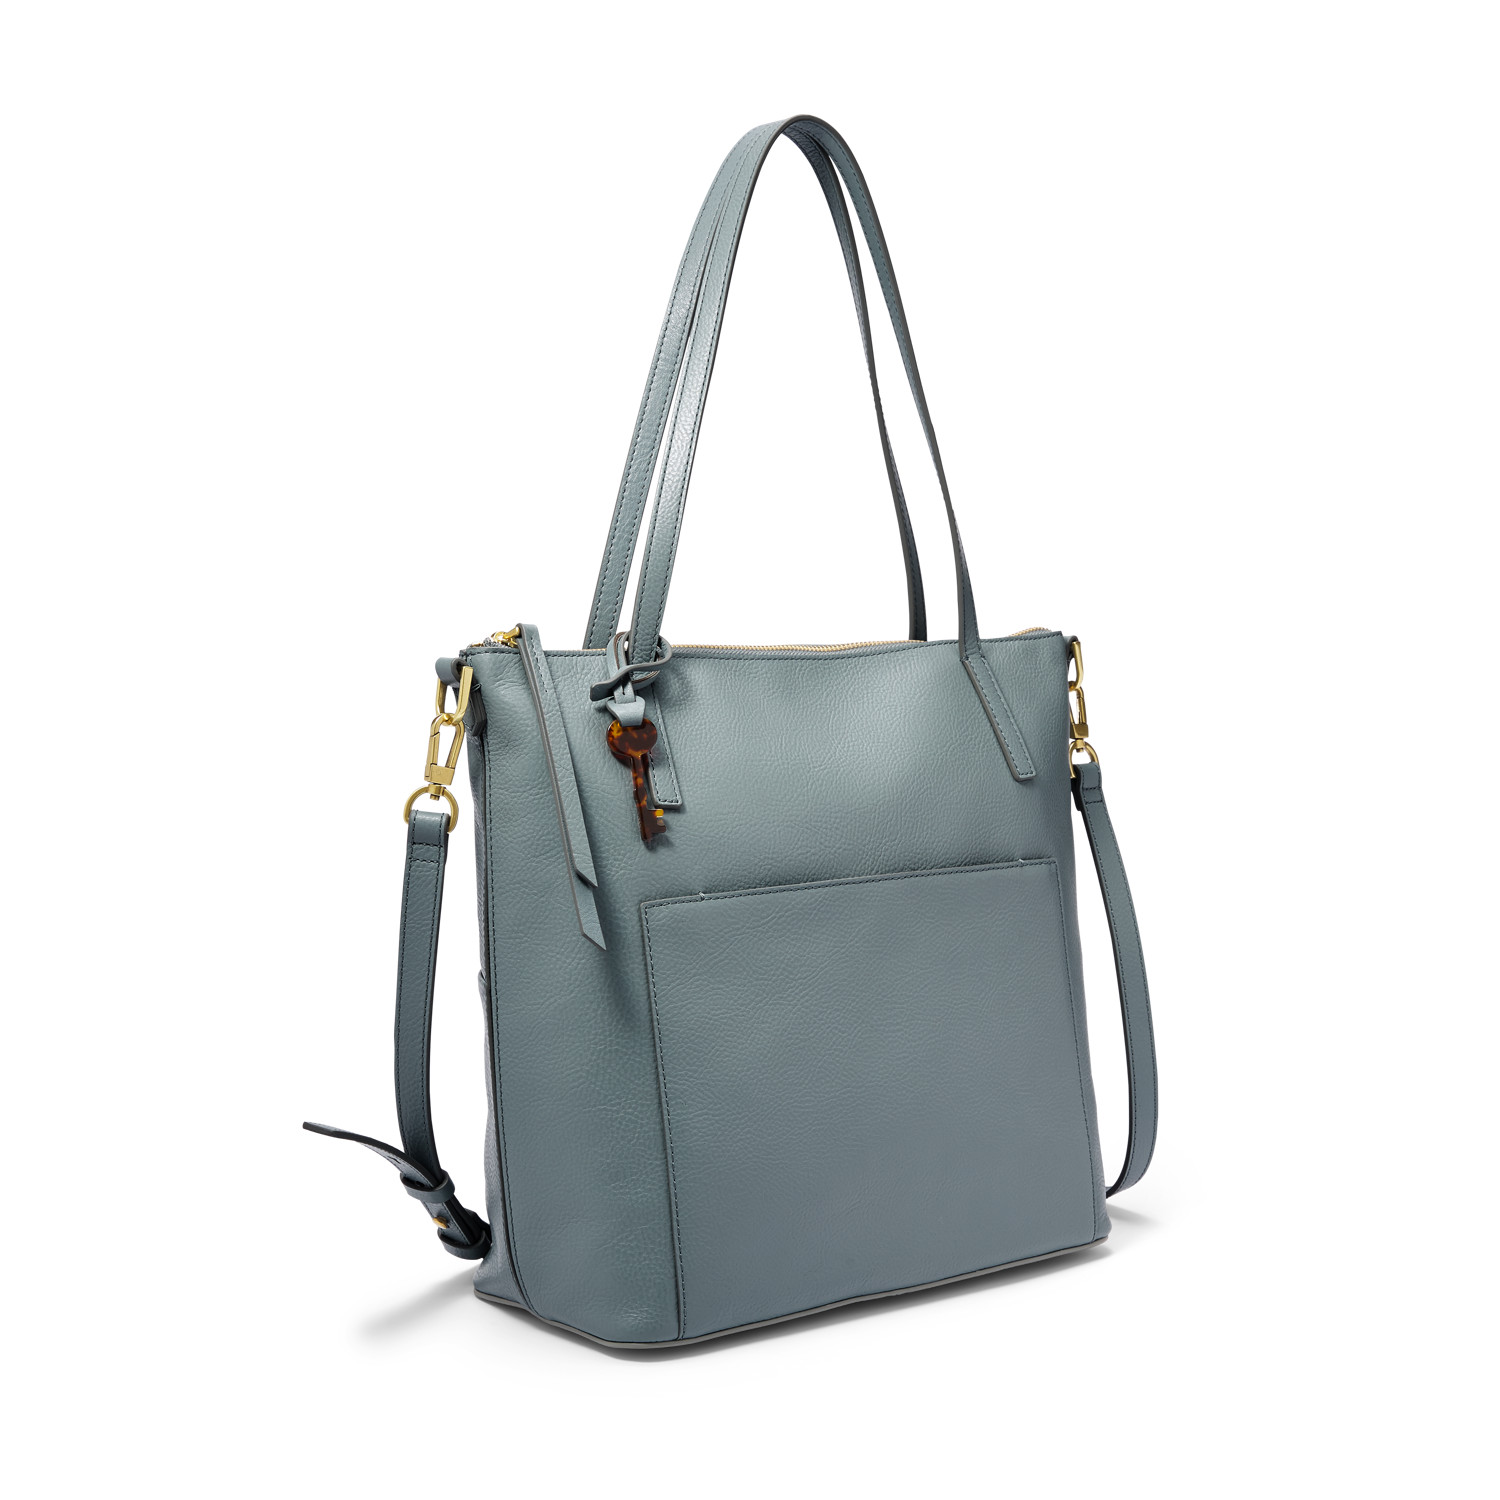 reputable site b0a3a 1fe77 Damen Tasche Evelyn - Medium Shopper